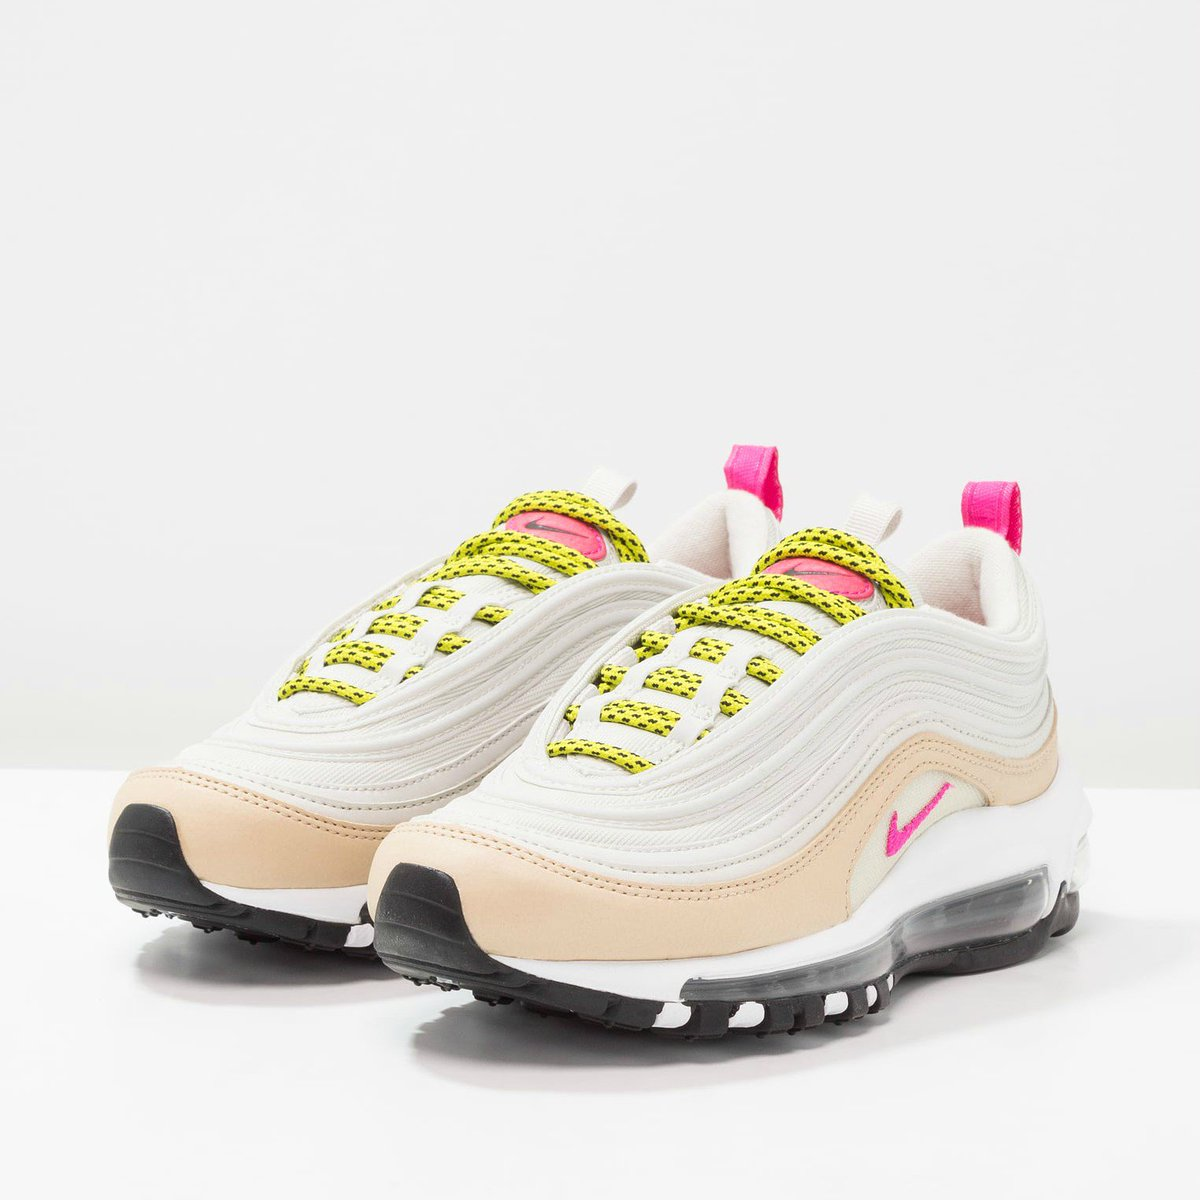 07f3062c077 ... best price zalando uk on twitter our new fave air max 97 colourway from  nike sportswear